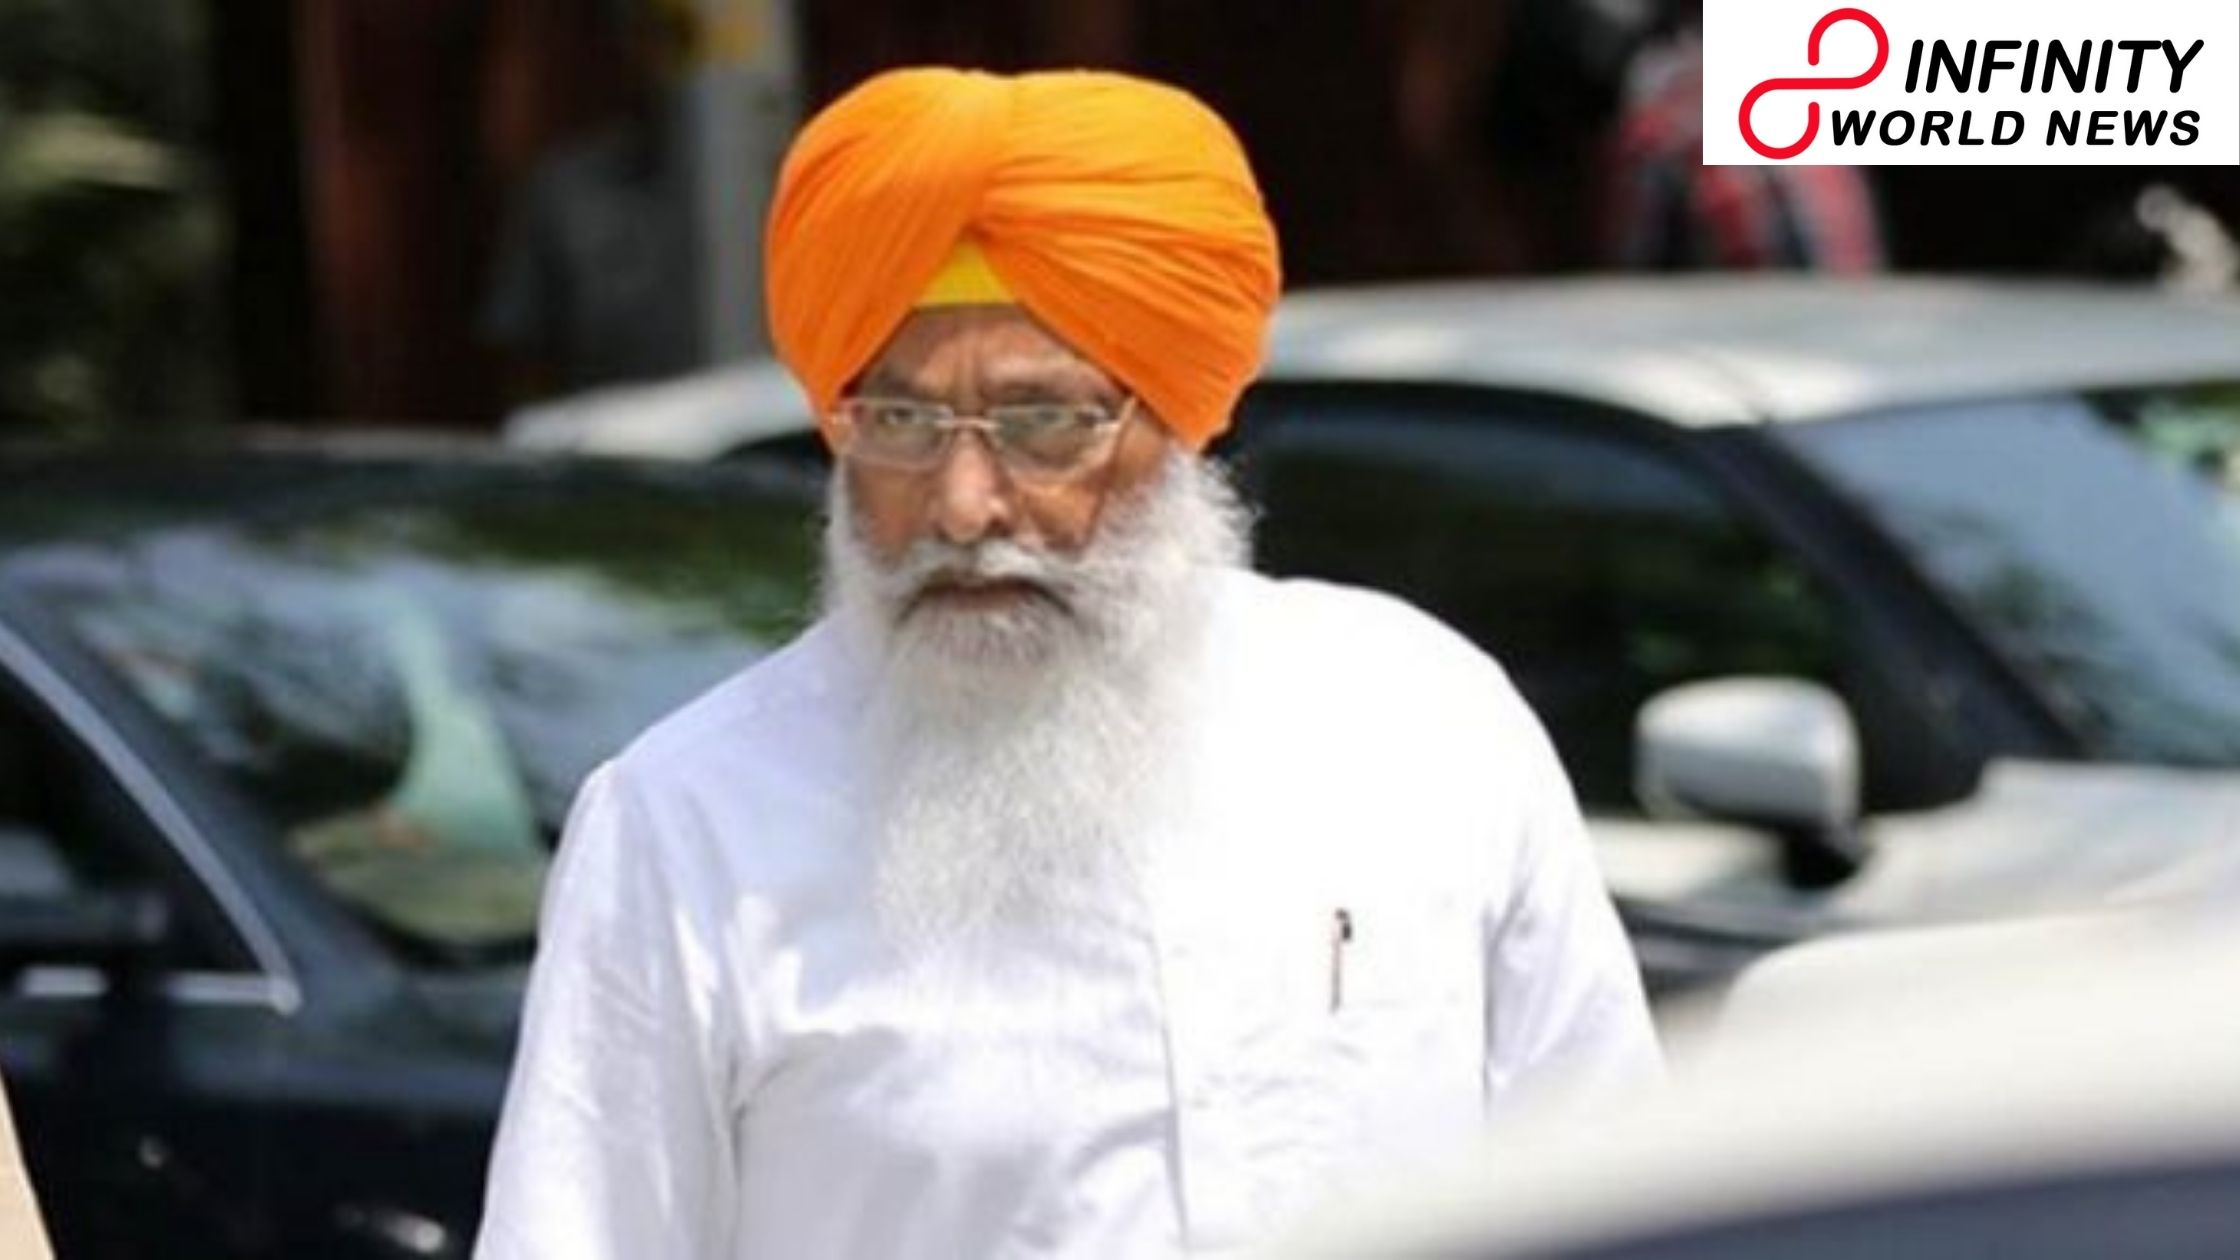 Radical SAD Leader Sukhdev Singh Dhindsa to Approach EC for New Political Party_ Report